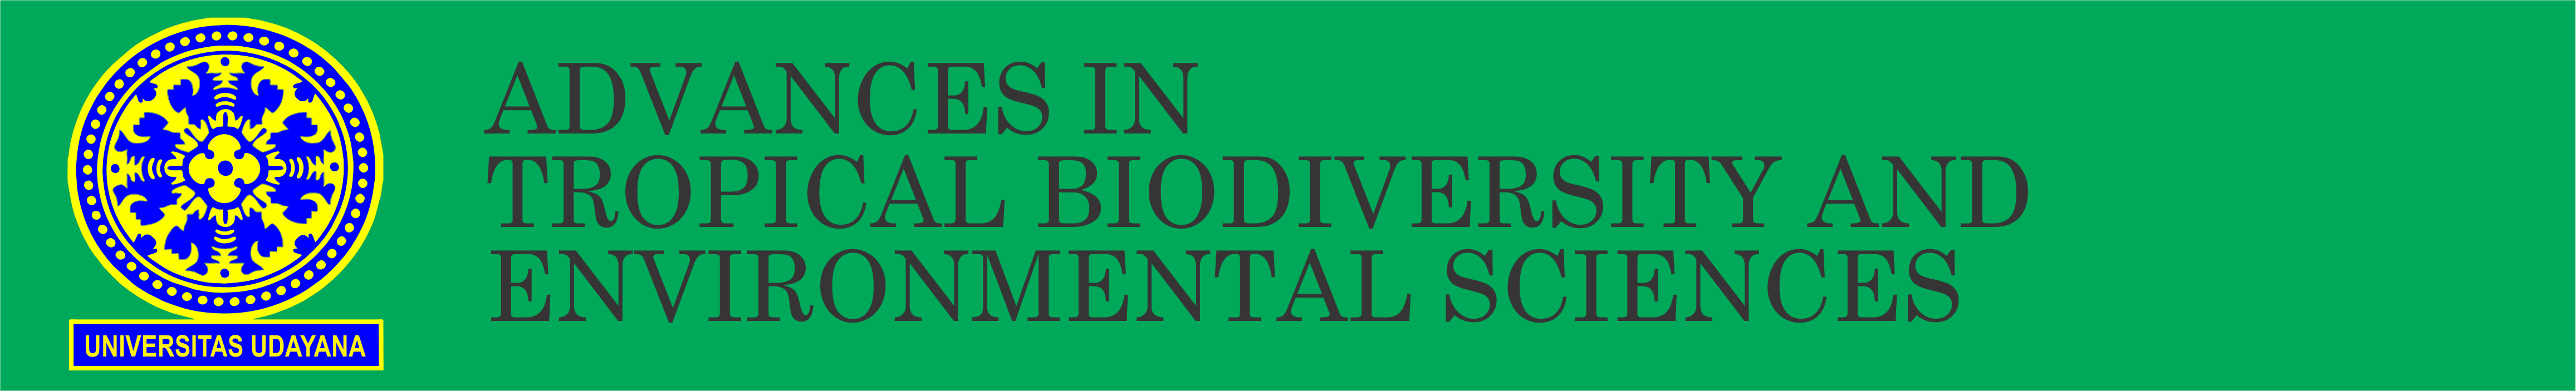 Header ATBES - Advances in Tropical Biodiversity and Environmental Sciences